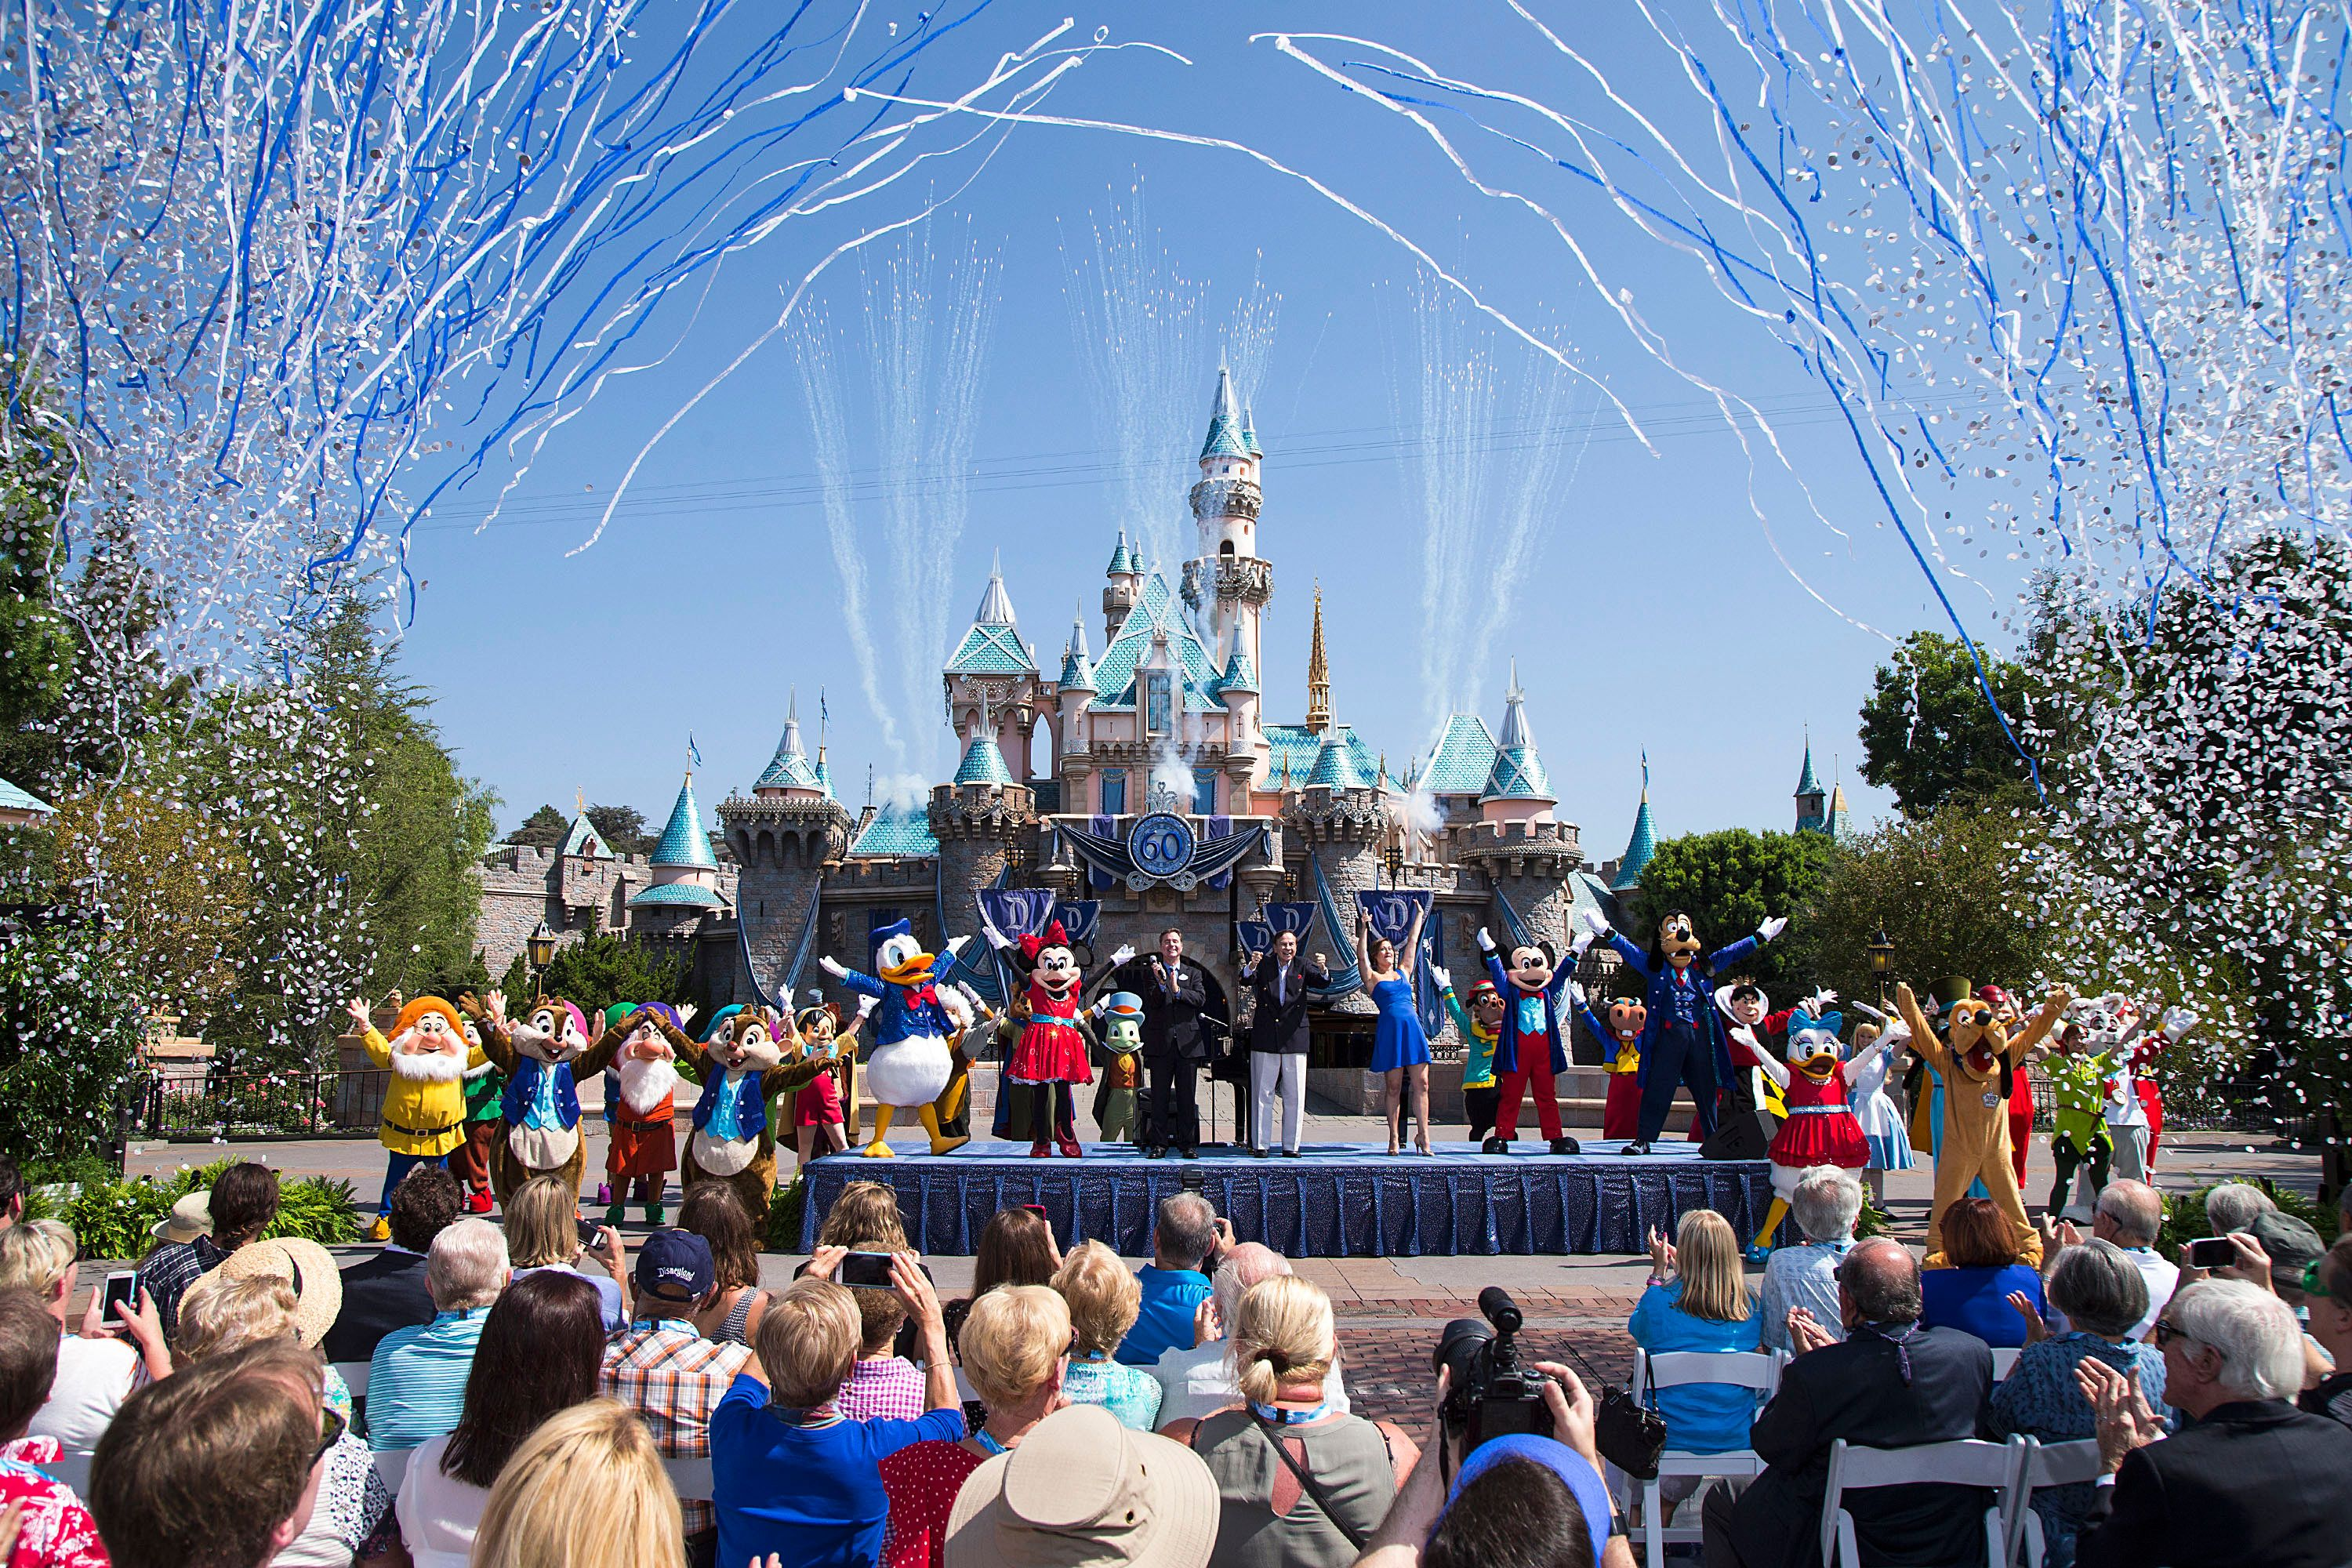 ANAHEIM, CA - JULY 17:  In this handout photo provided by Disney parks, Mickey Mouse and his friends celebrate the 60th anniversary of Disneyland park during a ceremony at Sleeping Beauty Castle featuring Academy Award-winning composer, Richard Sherman and Broadway actress and singer Ashley Brown July 17, 2015 in Anaheim, California.  Celebrating six decades of magic, the Disneyland Resort Diamond Celebration features three new nighttime spectaculars that immerse guests in the worlds of Disney stories like never before with 'Paint the Night,' the first all-LED parade at the resort; 'Disneyland Forever,' a reinvention of classic fireworks that adds projections to pyrotechnics to transform the park experience; and a moving new version of 'World of Color' that celebrates Walt Disneys dream for Disneyland.  (Photo by Paul Hiffmeyer/Disneyland Resort via Getty Images)